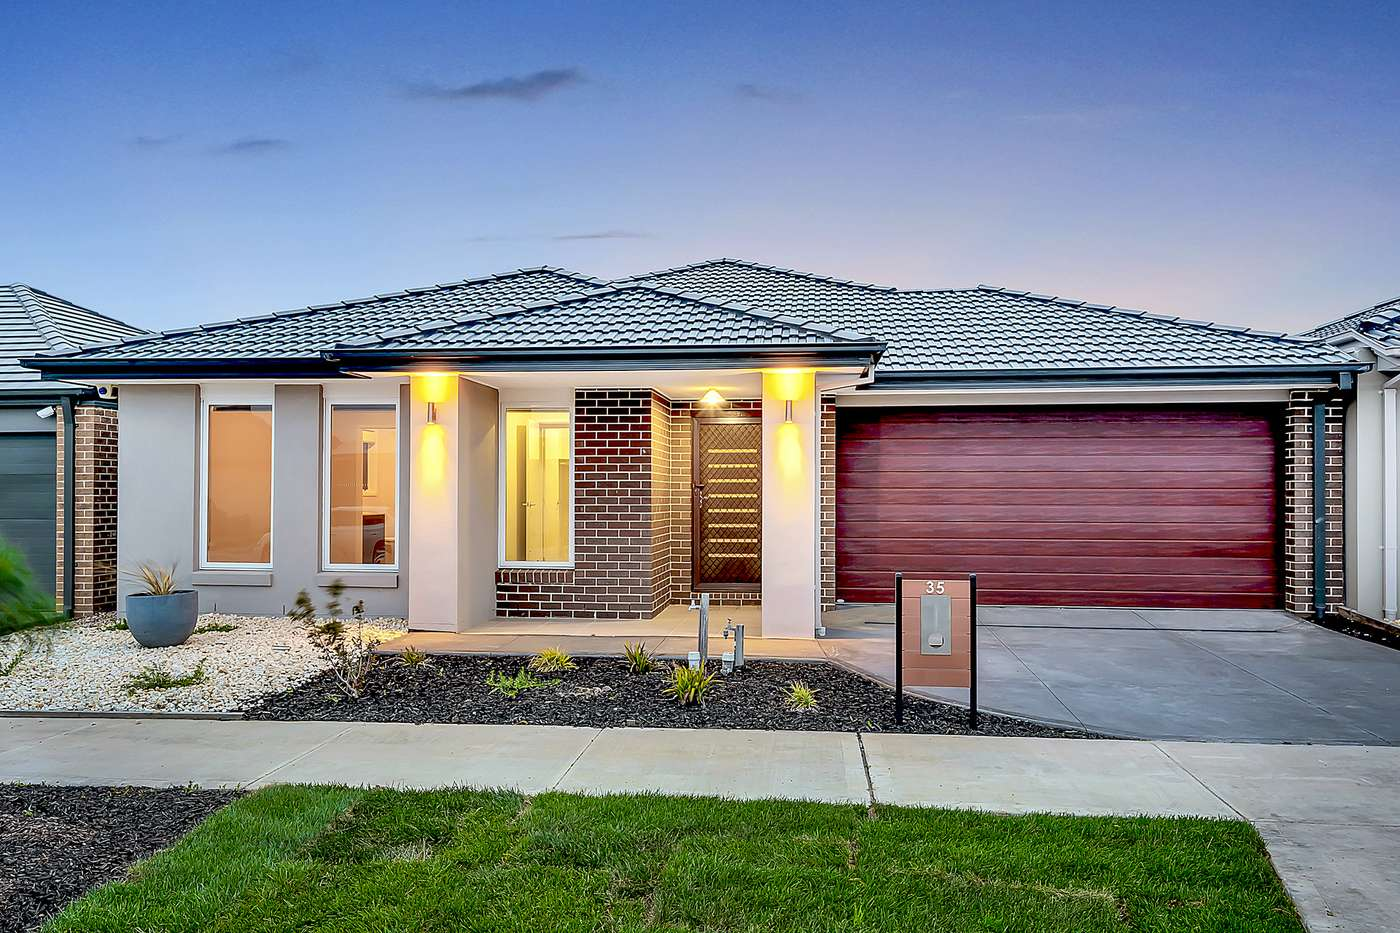 Main view of Homely house listing, 35 Moonlight Way, Mickleham, VIC 3064